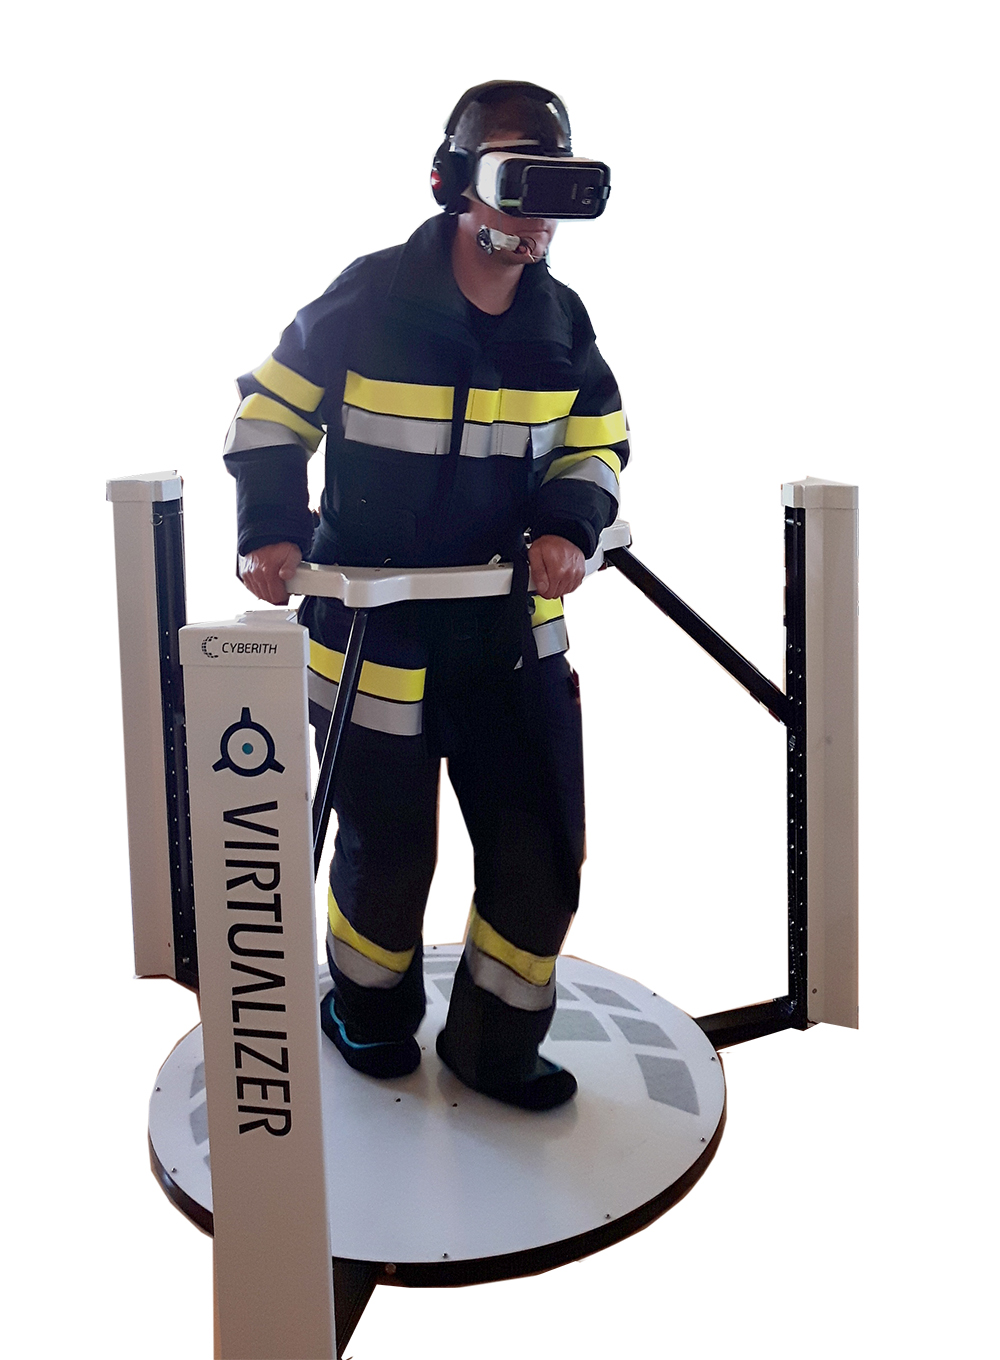 87f0cf1d92f Virtual Simulation and On-Site Training for First Responders (2015 ...